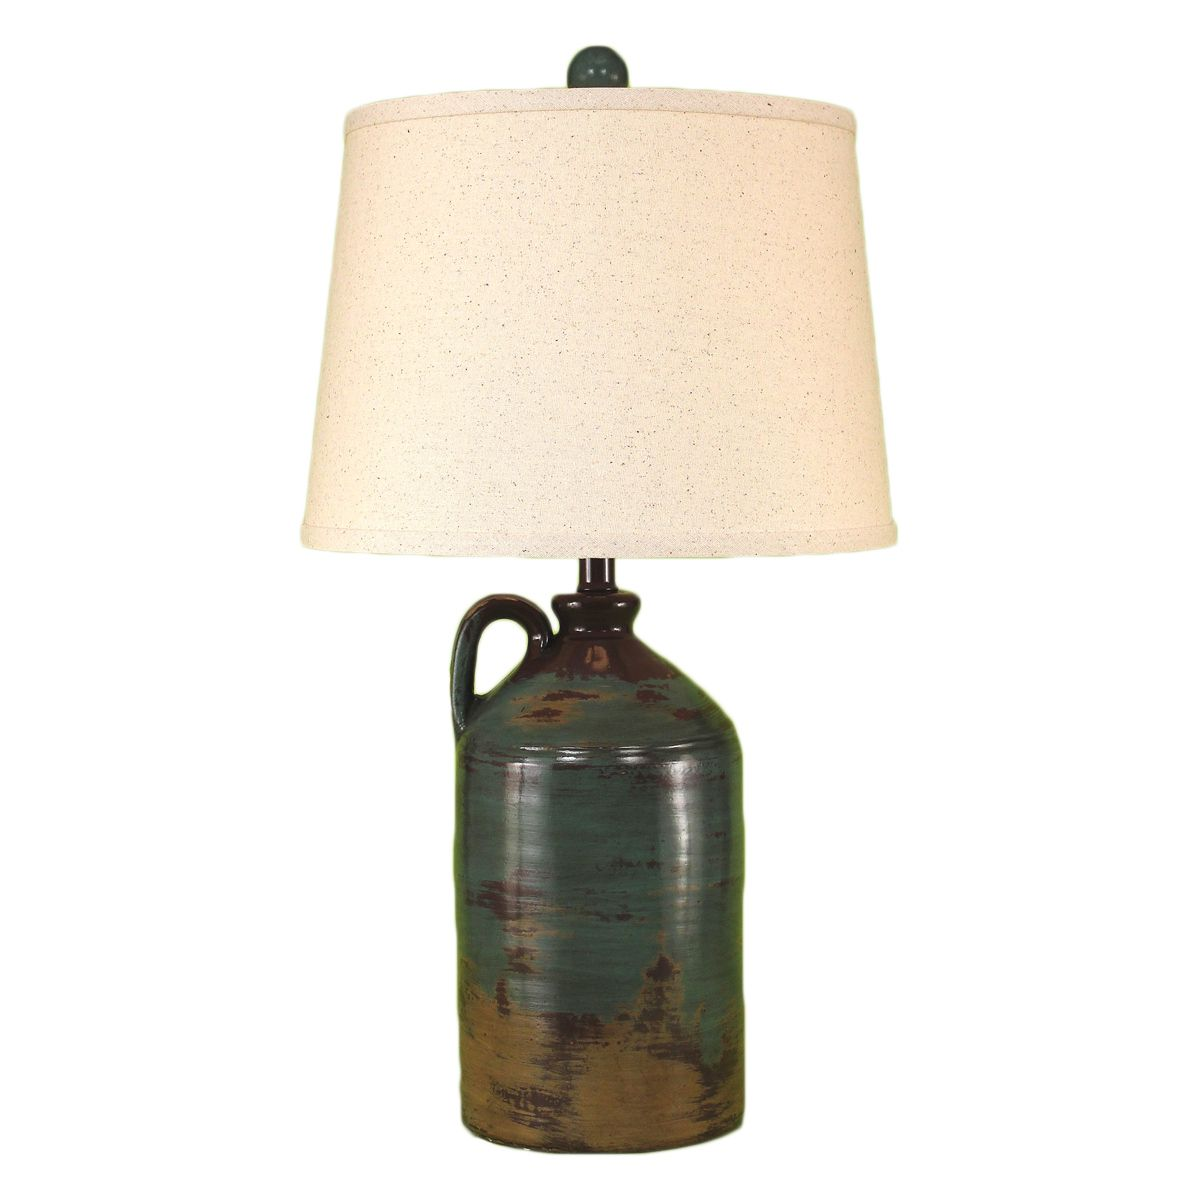 Handle Pottery Jug Table Lamp - Harvest